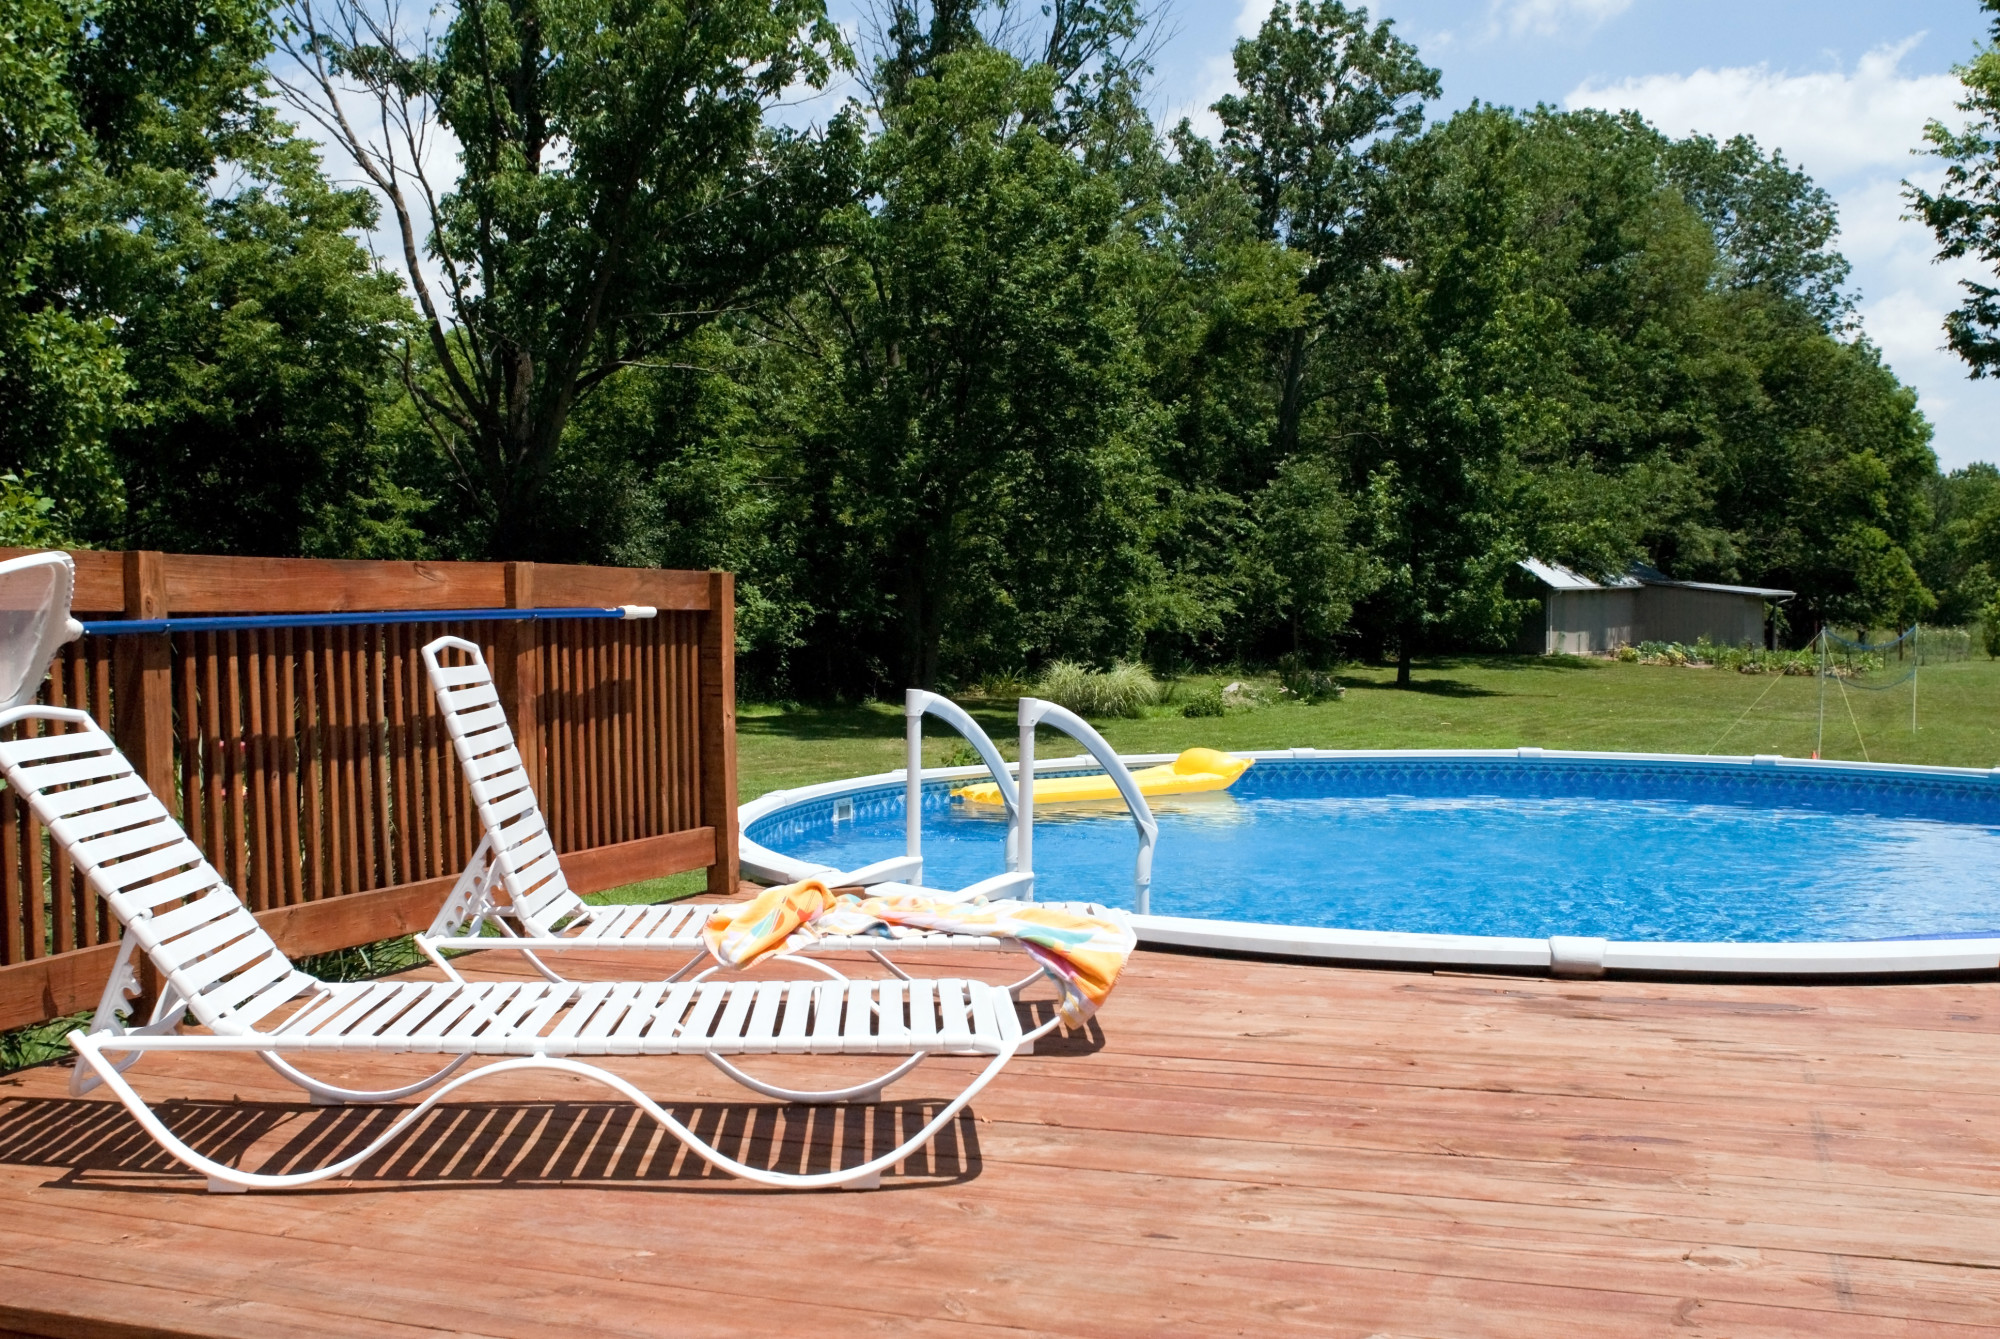 7 Key Things to Know Before Installing an In-Ground Swimming Pool